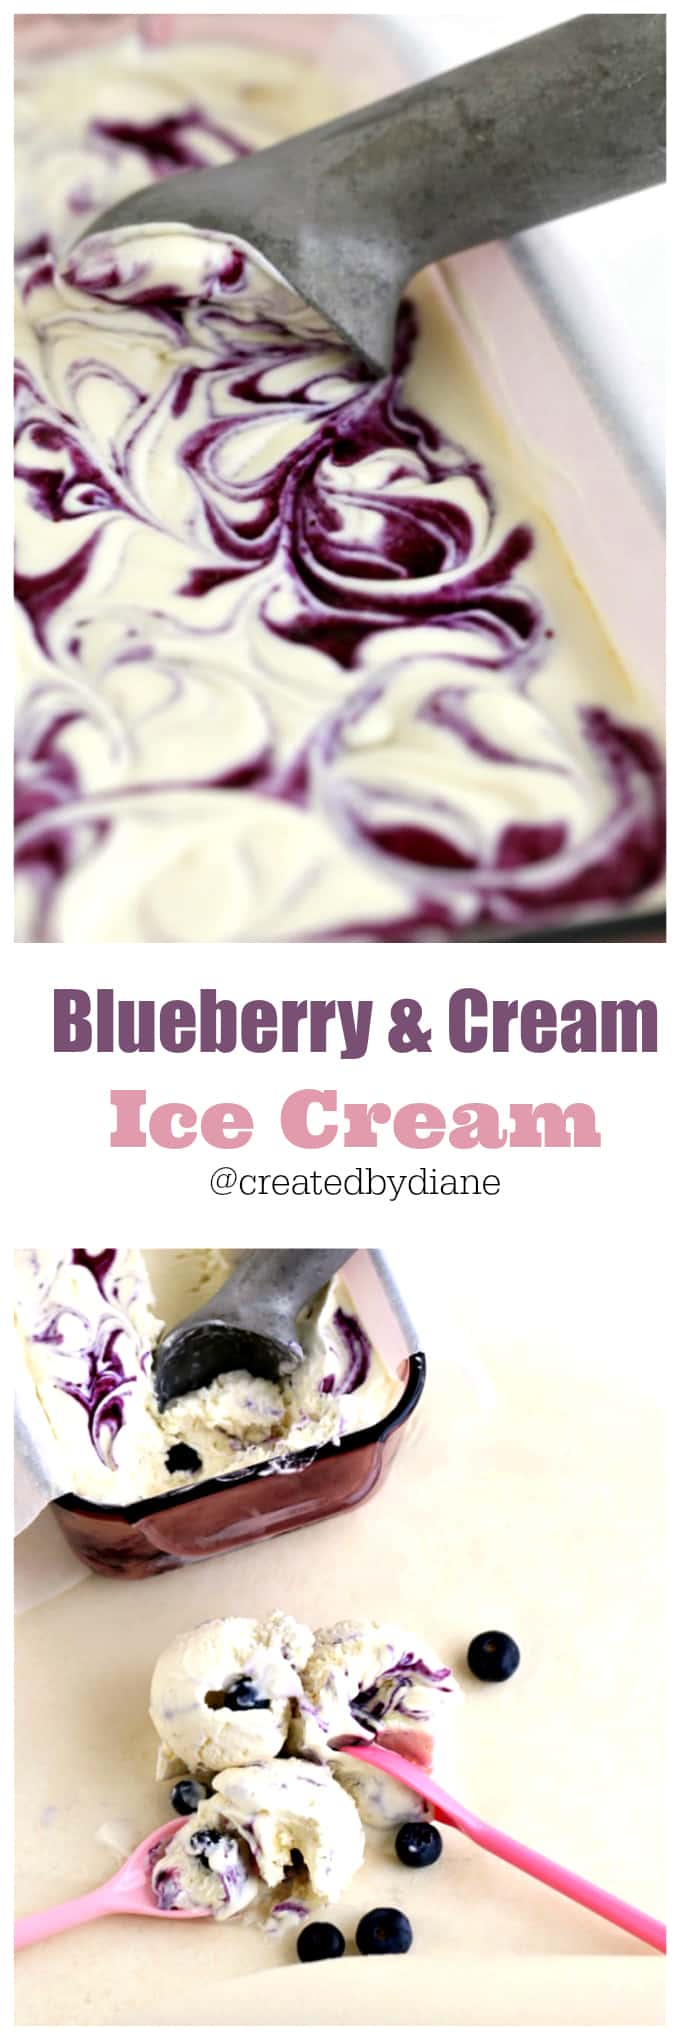 blueberries and cream ice cream from @createdbydiane